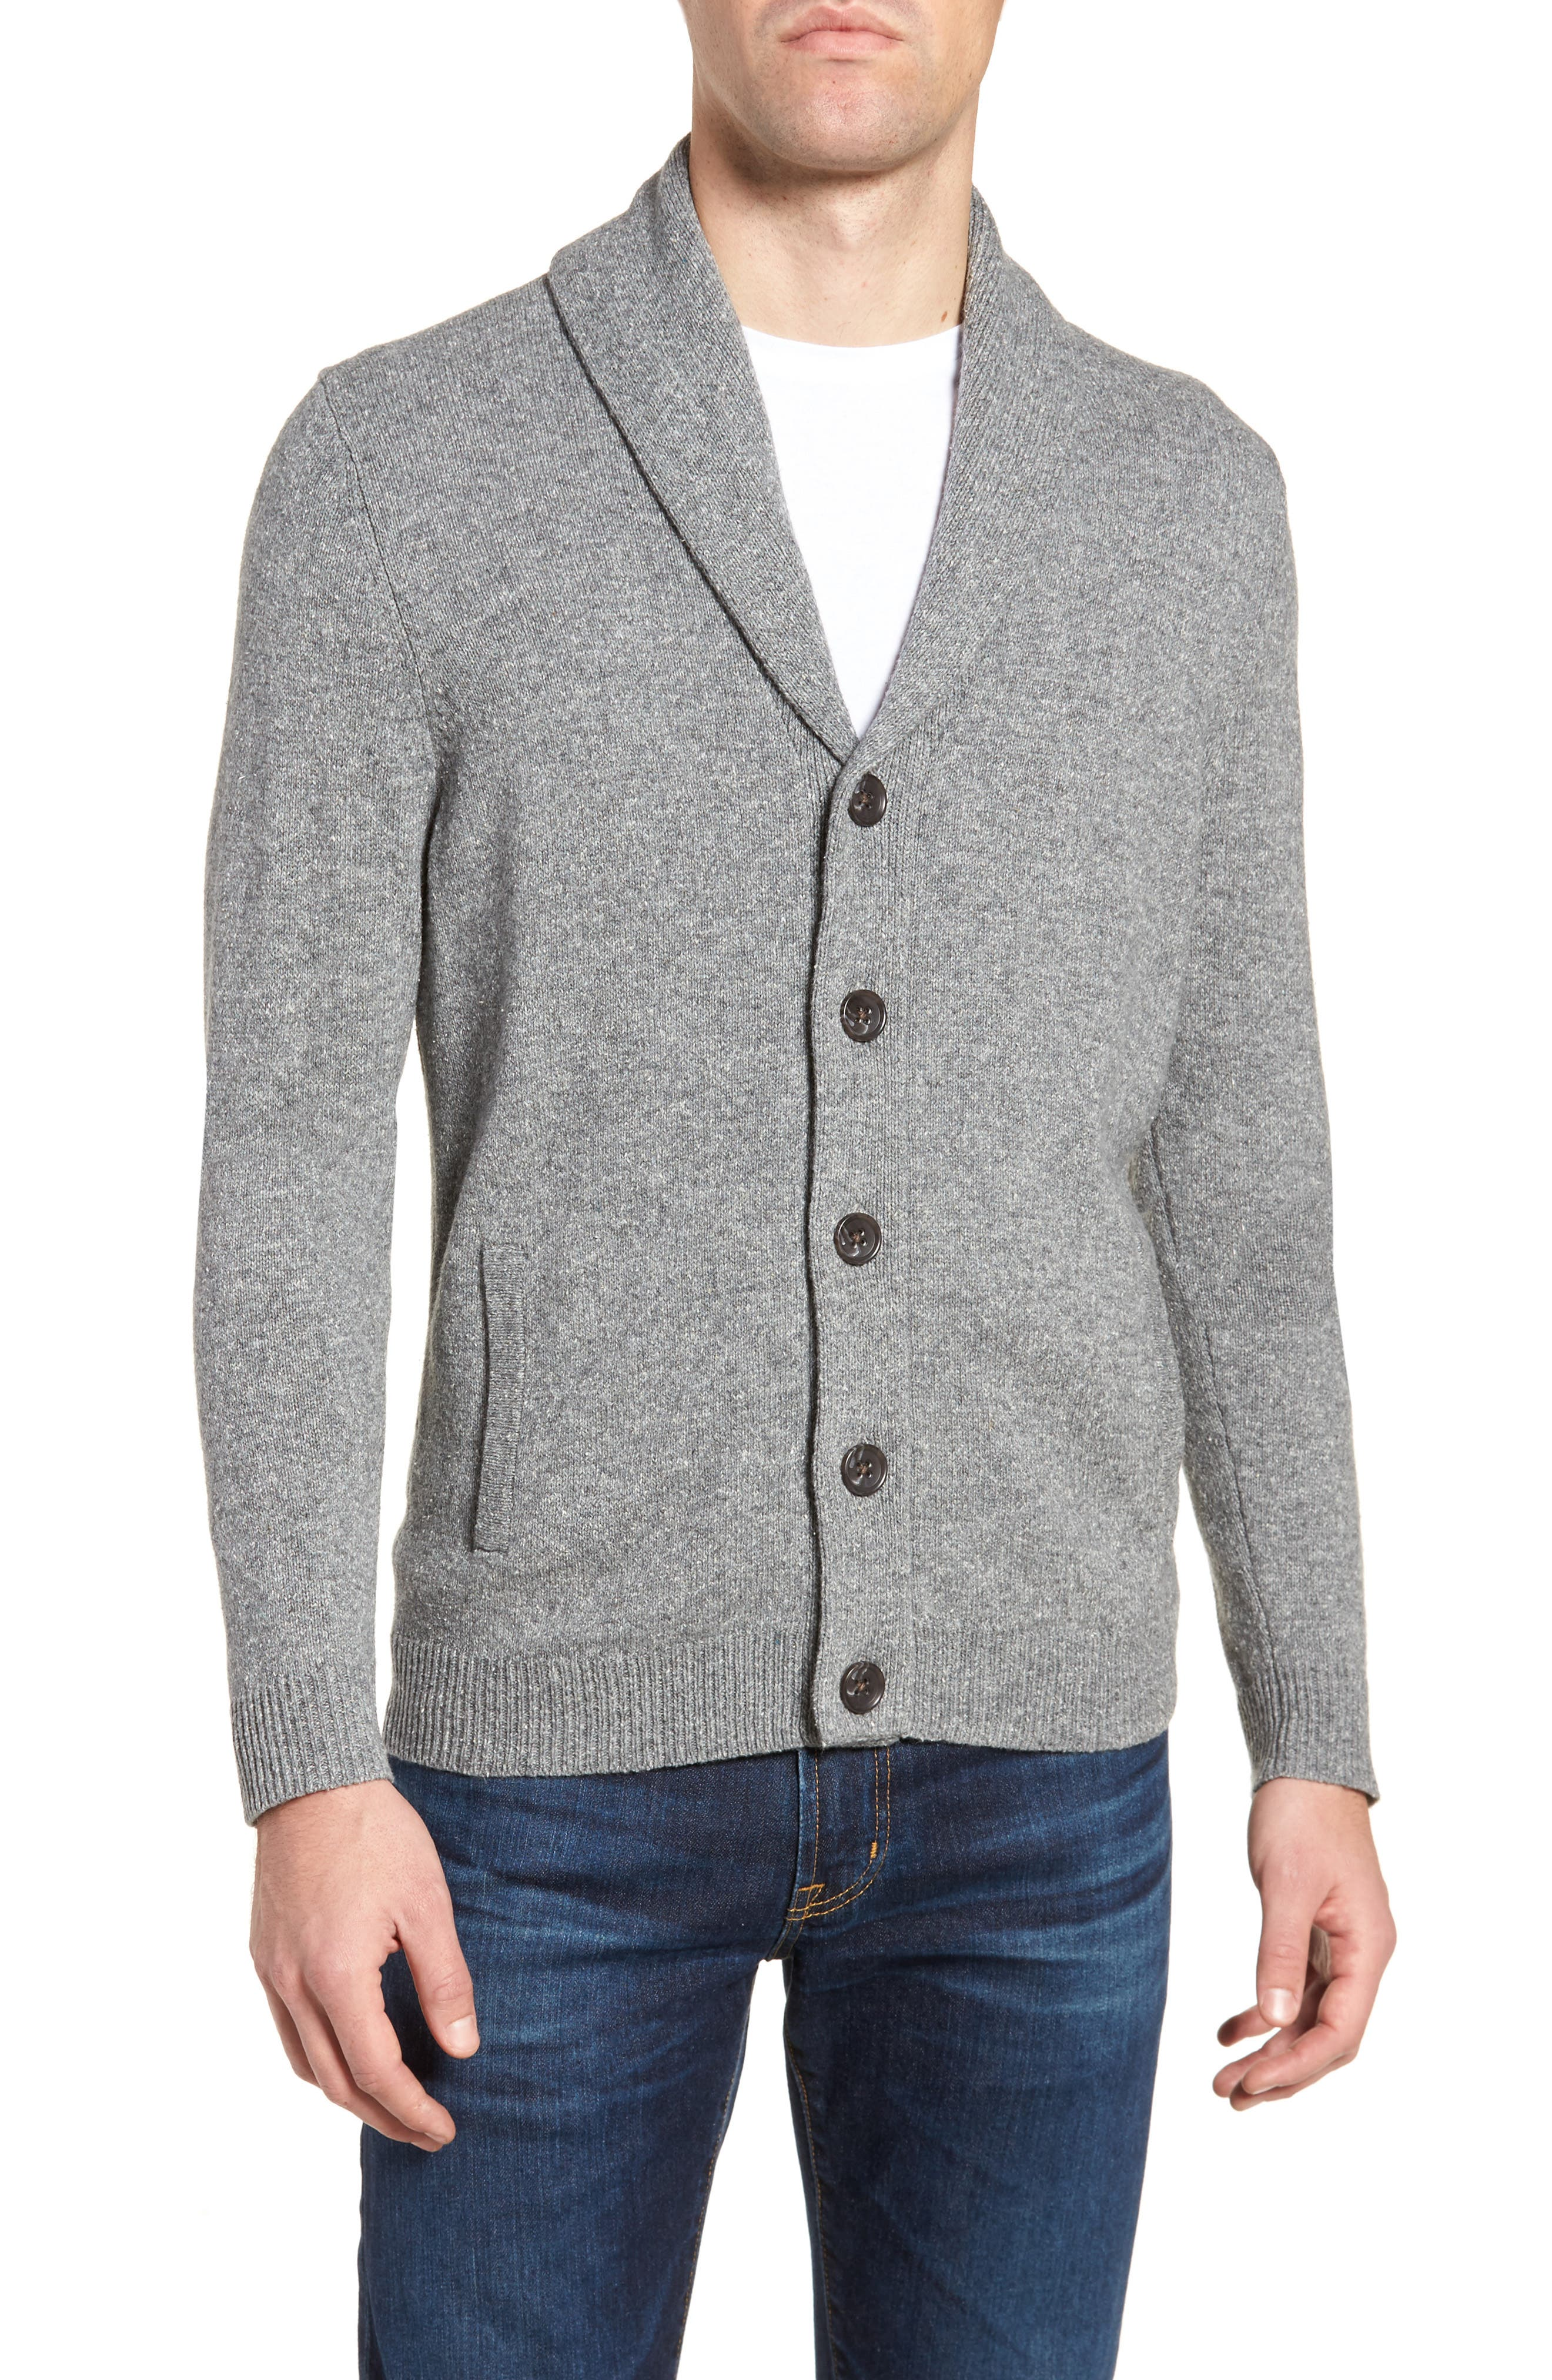 Shawl Collar Cardigan,                             Main thumbnail 1, color,                             030